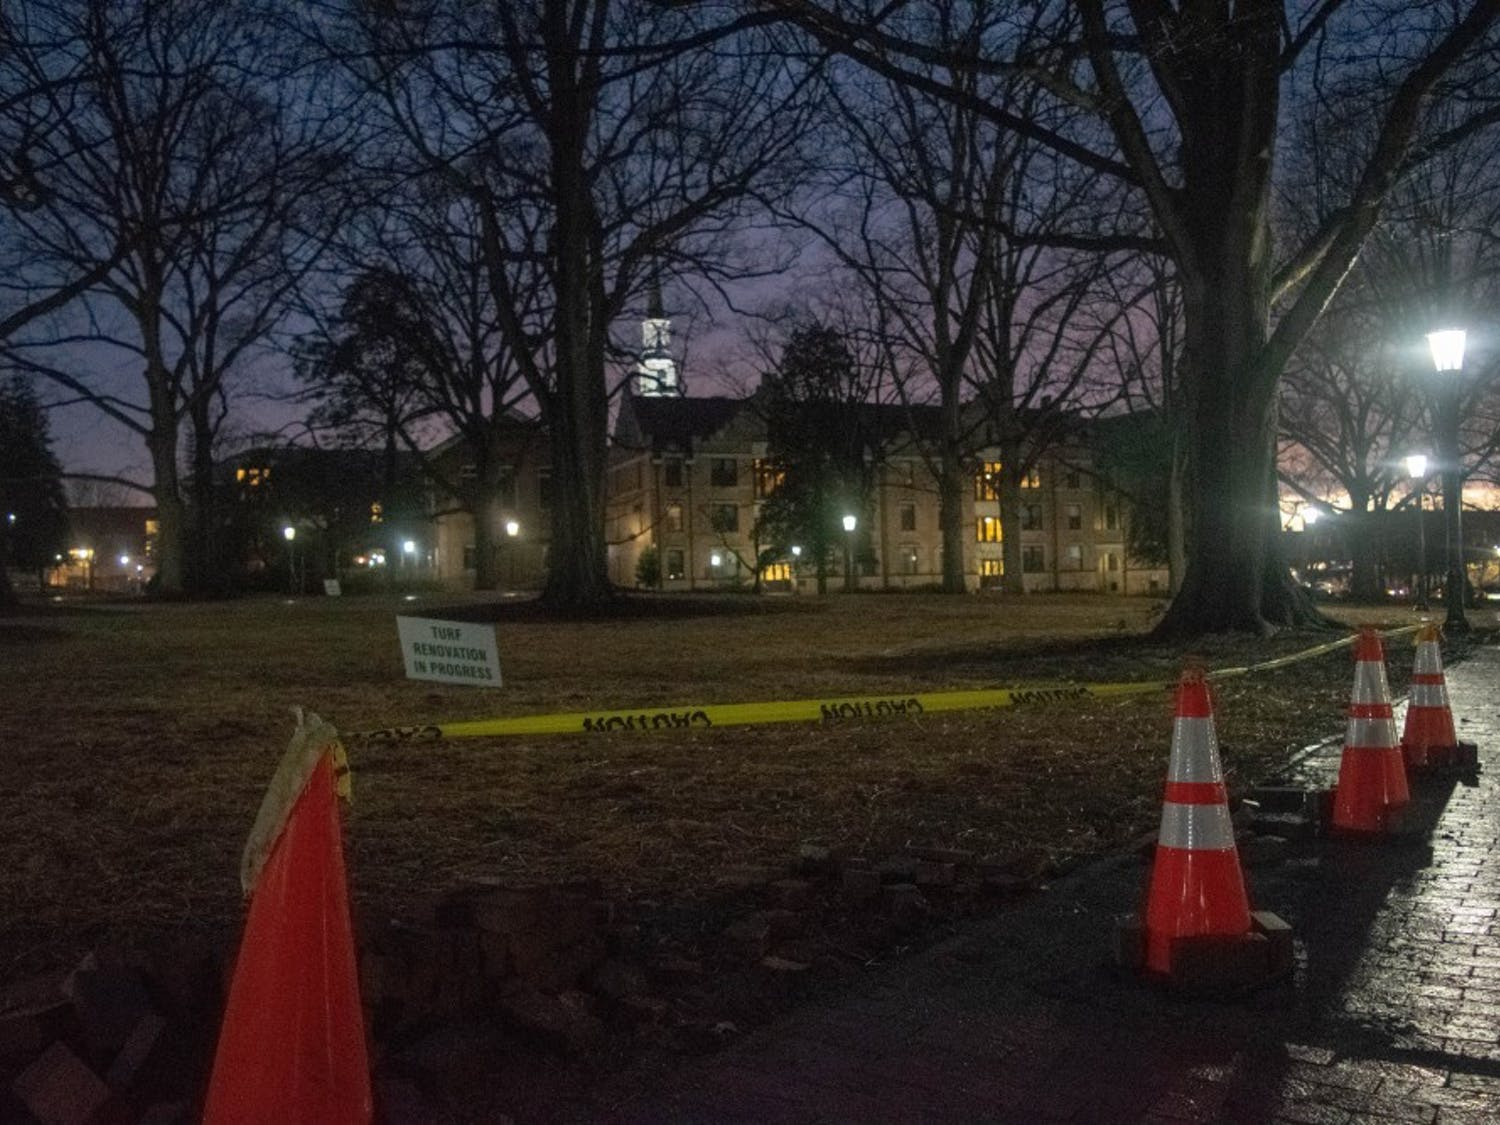 McCorkle Place, the former site of Silent Sam, on Tuesday, Jan. 29, 2019. Silent Sam is a Confederate statue whose presence on campus faced heated opposition in the form of protests and demonstrations. It was eventually forcibly removed by protestors. A number of protestors who opposed the statue have received trespass notices. Many activists believe these notices may be an attempt to silence them due to difficulty in appealing the notices.